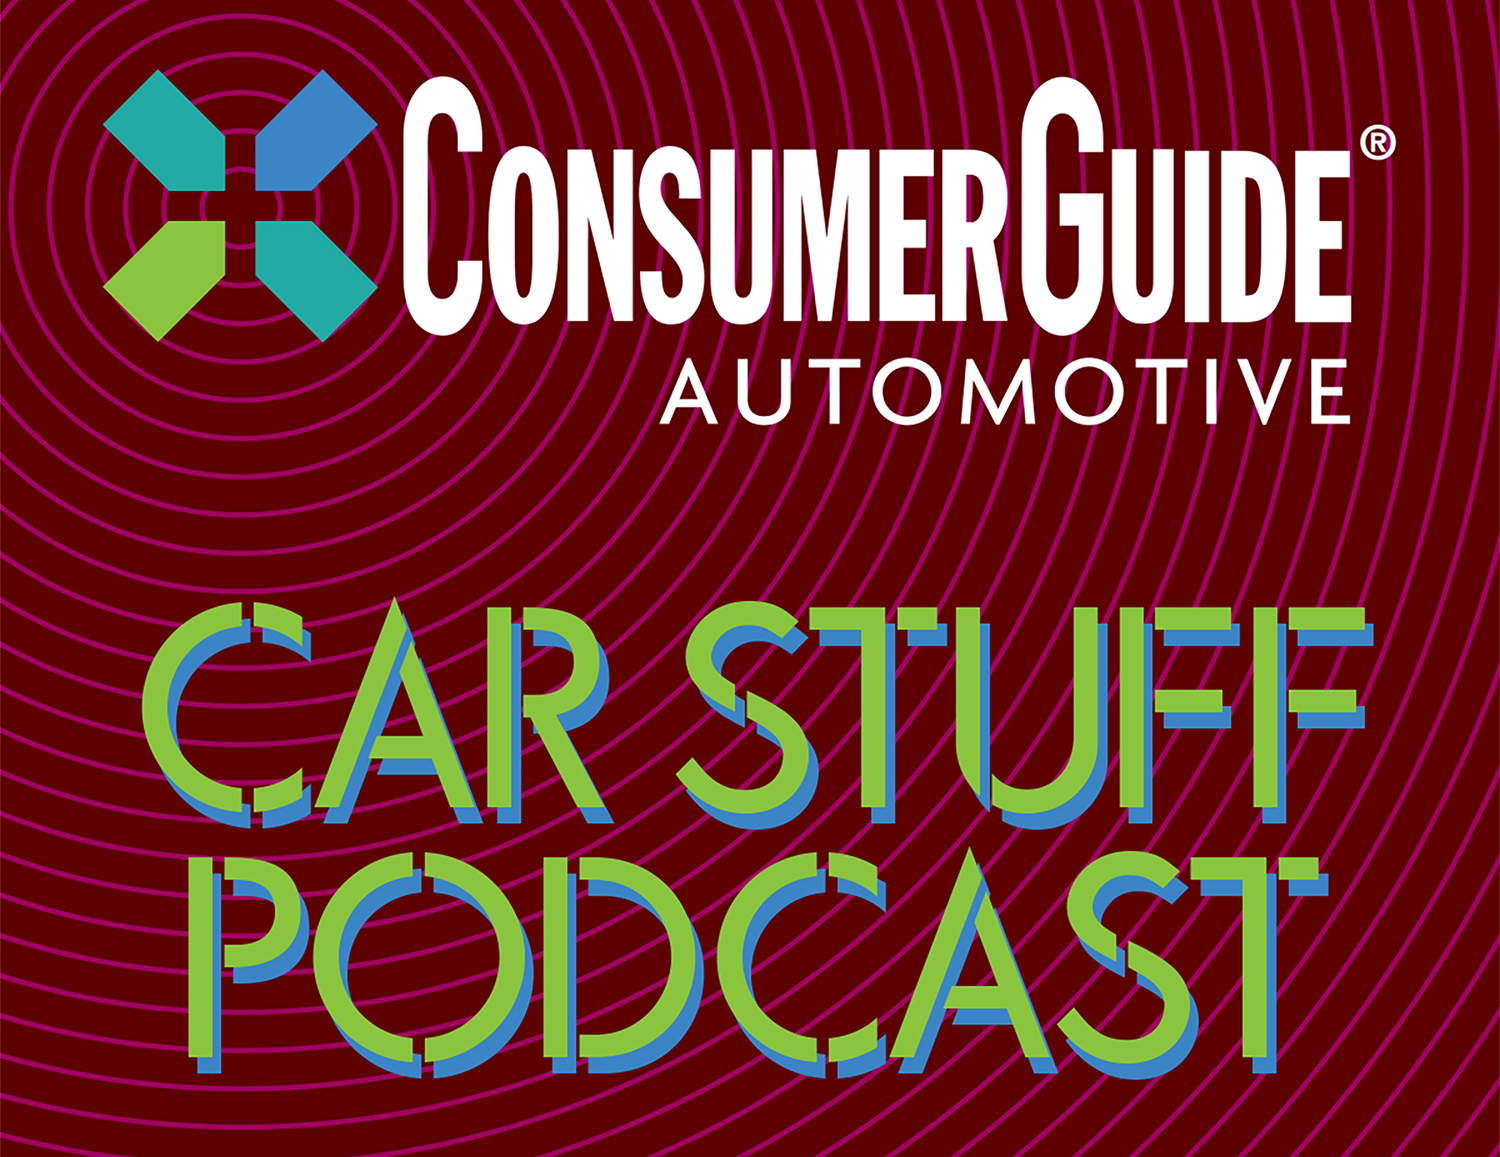 Consumer Guide Car Stuff Podcast